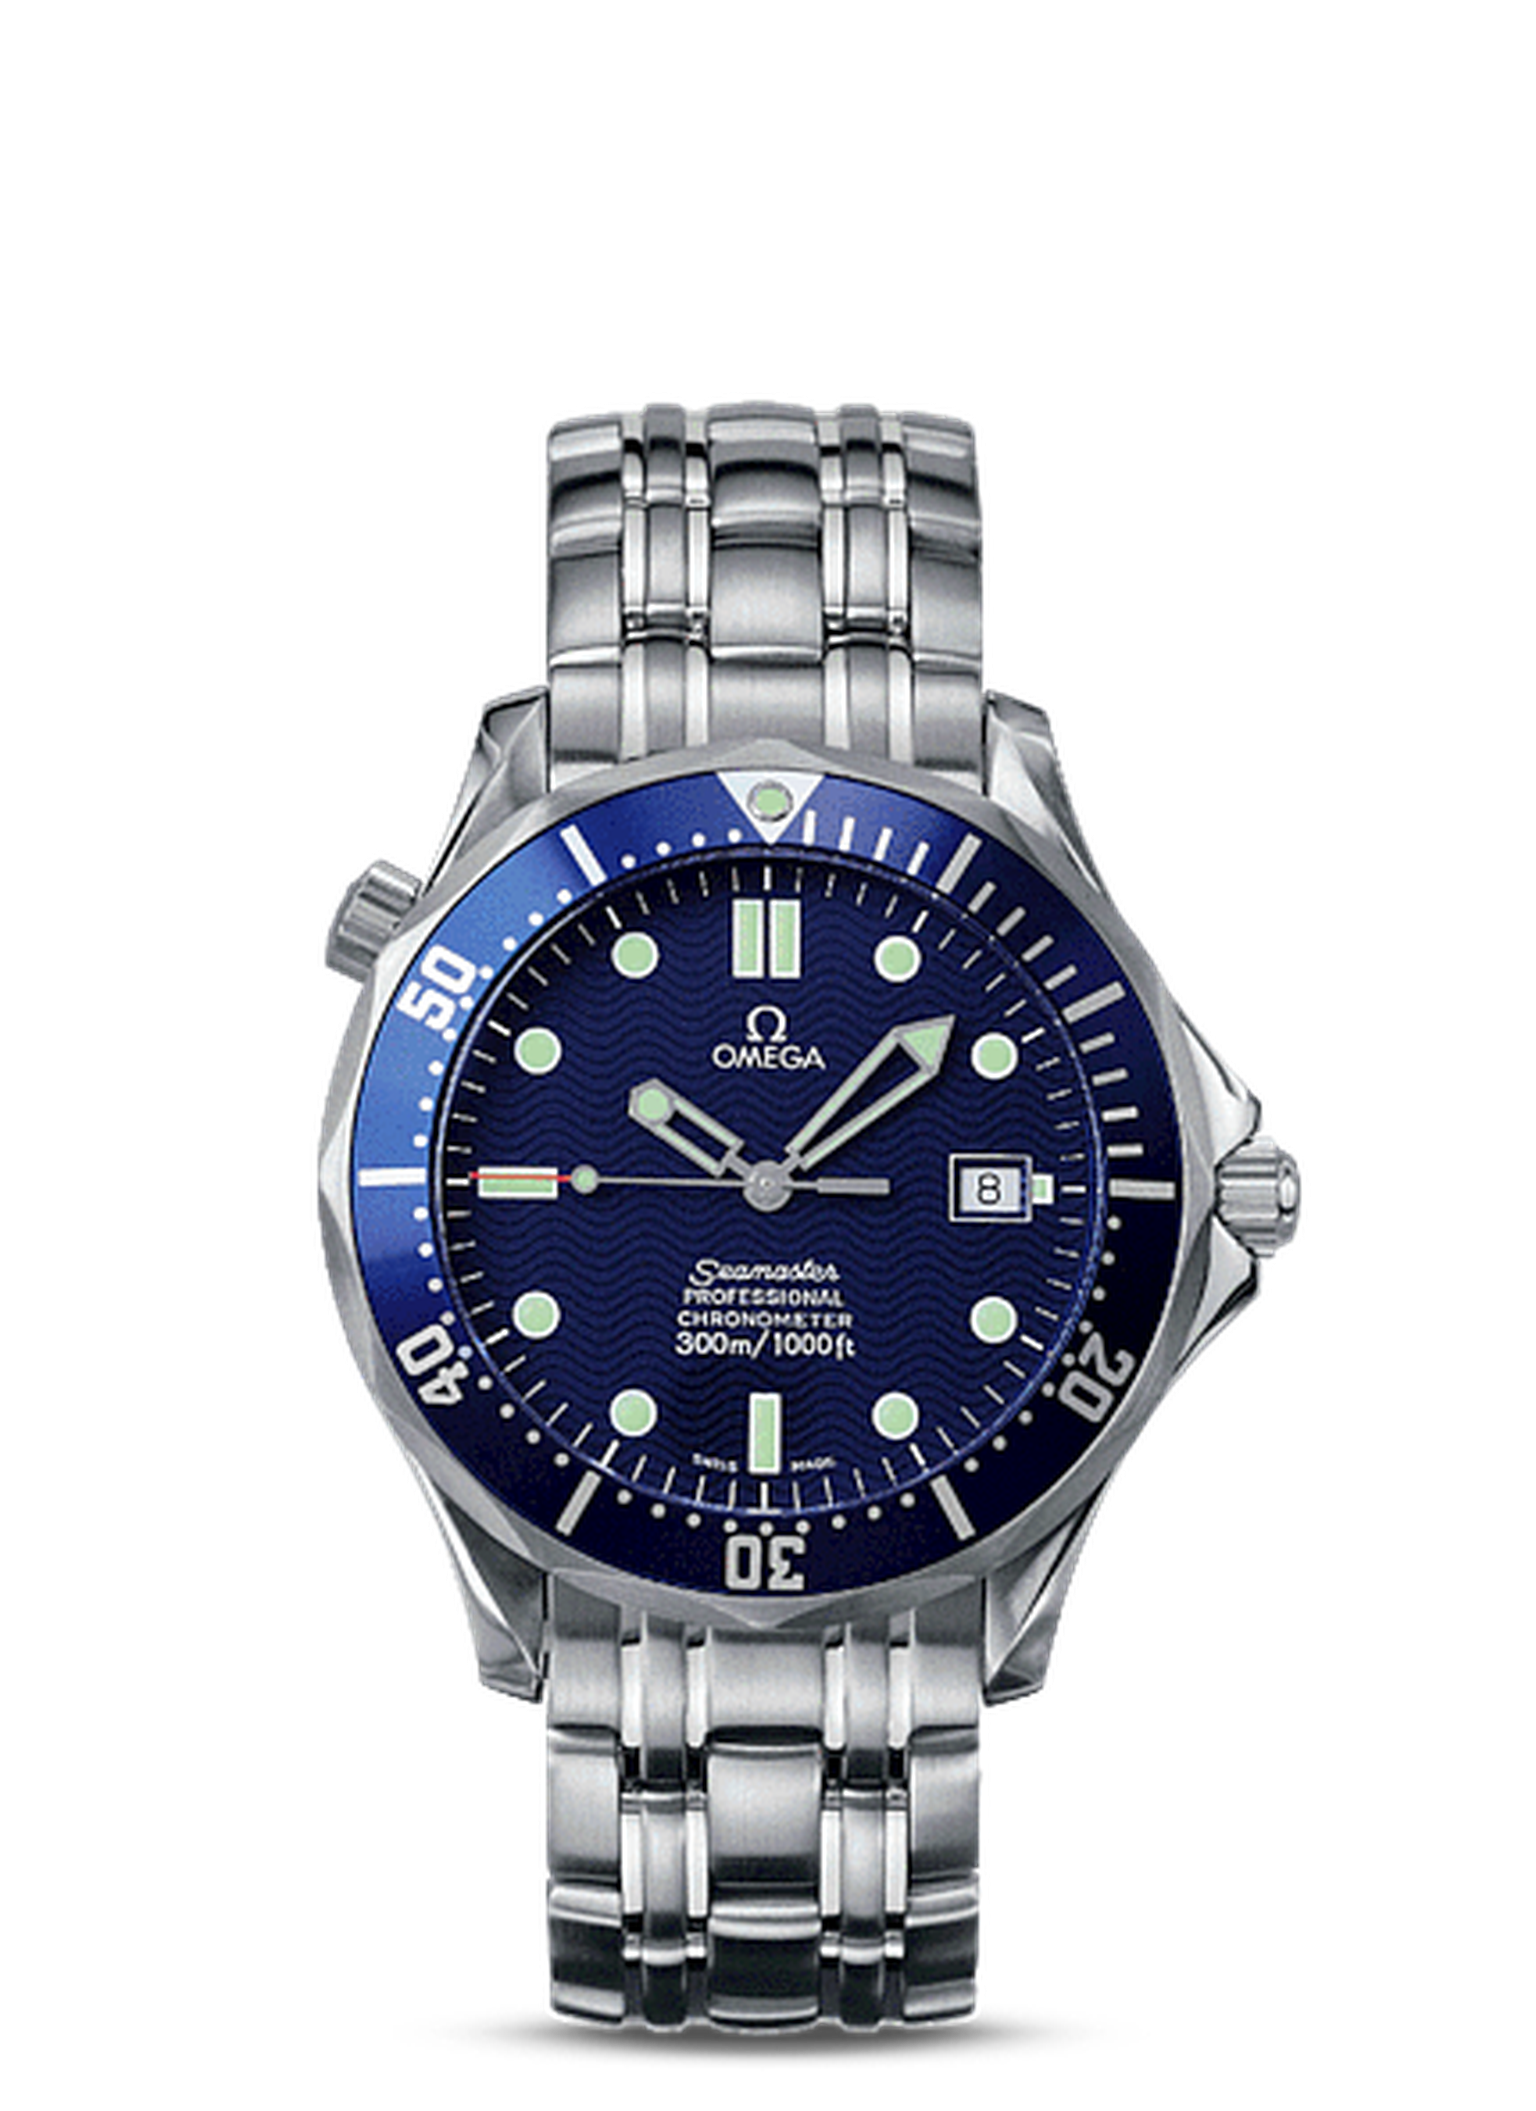 The Omega Seamaster 300m chronometer watch as seen on 007 in Tomorrow Never Dies.